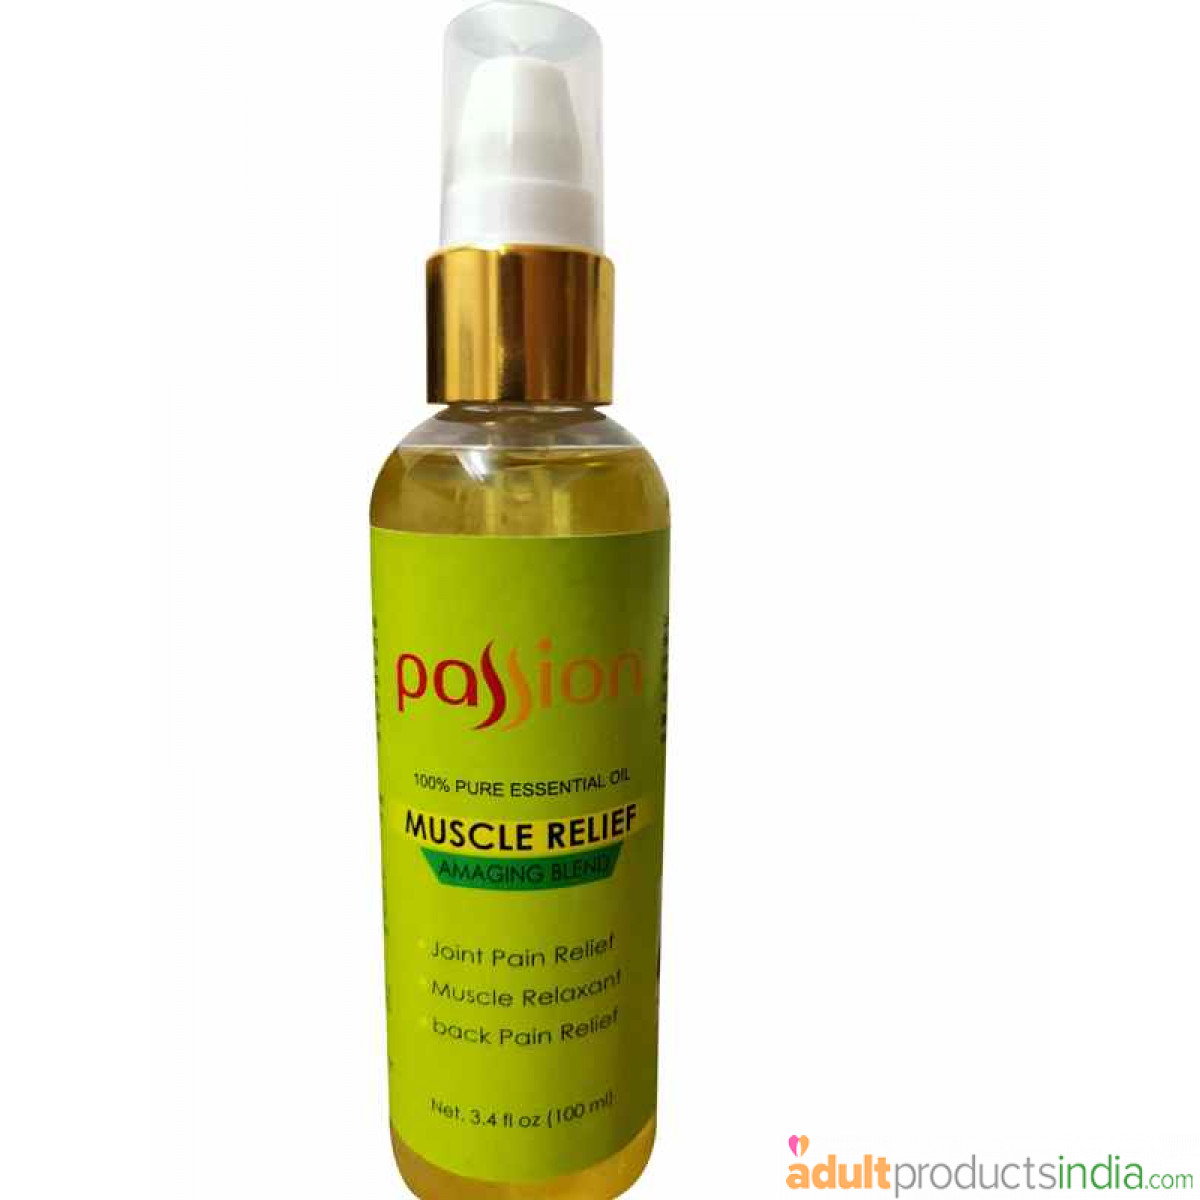 Passion - Body Massage Oil - Muscle Relief